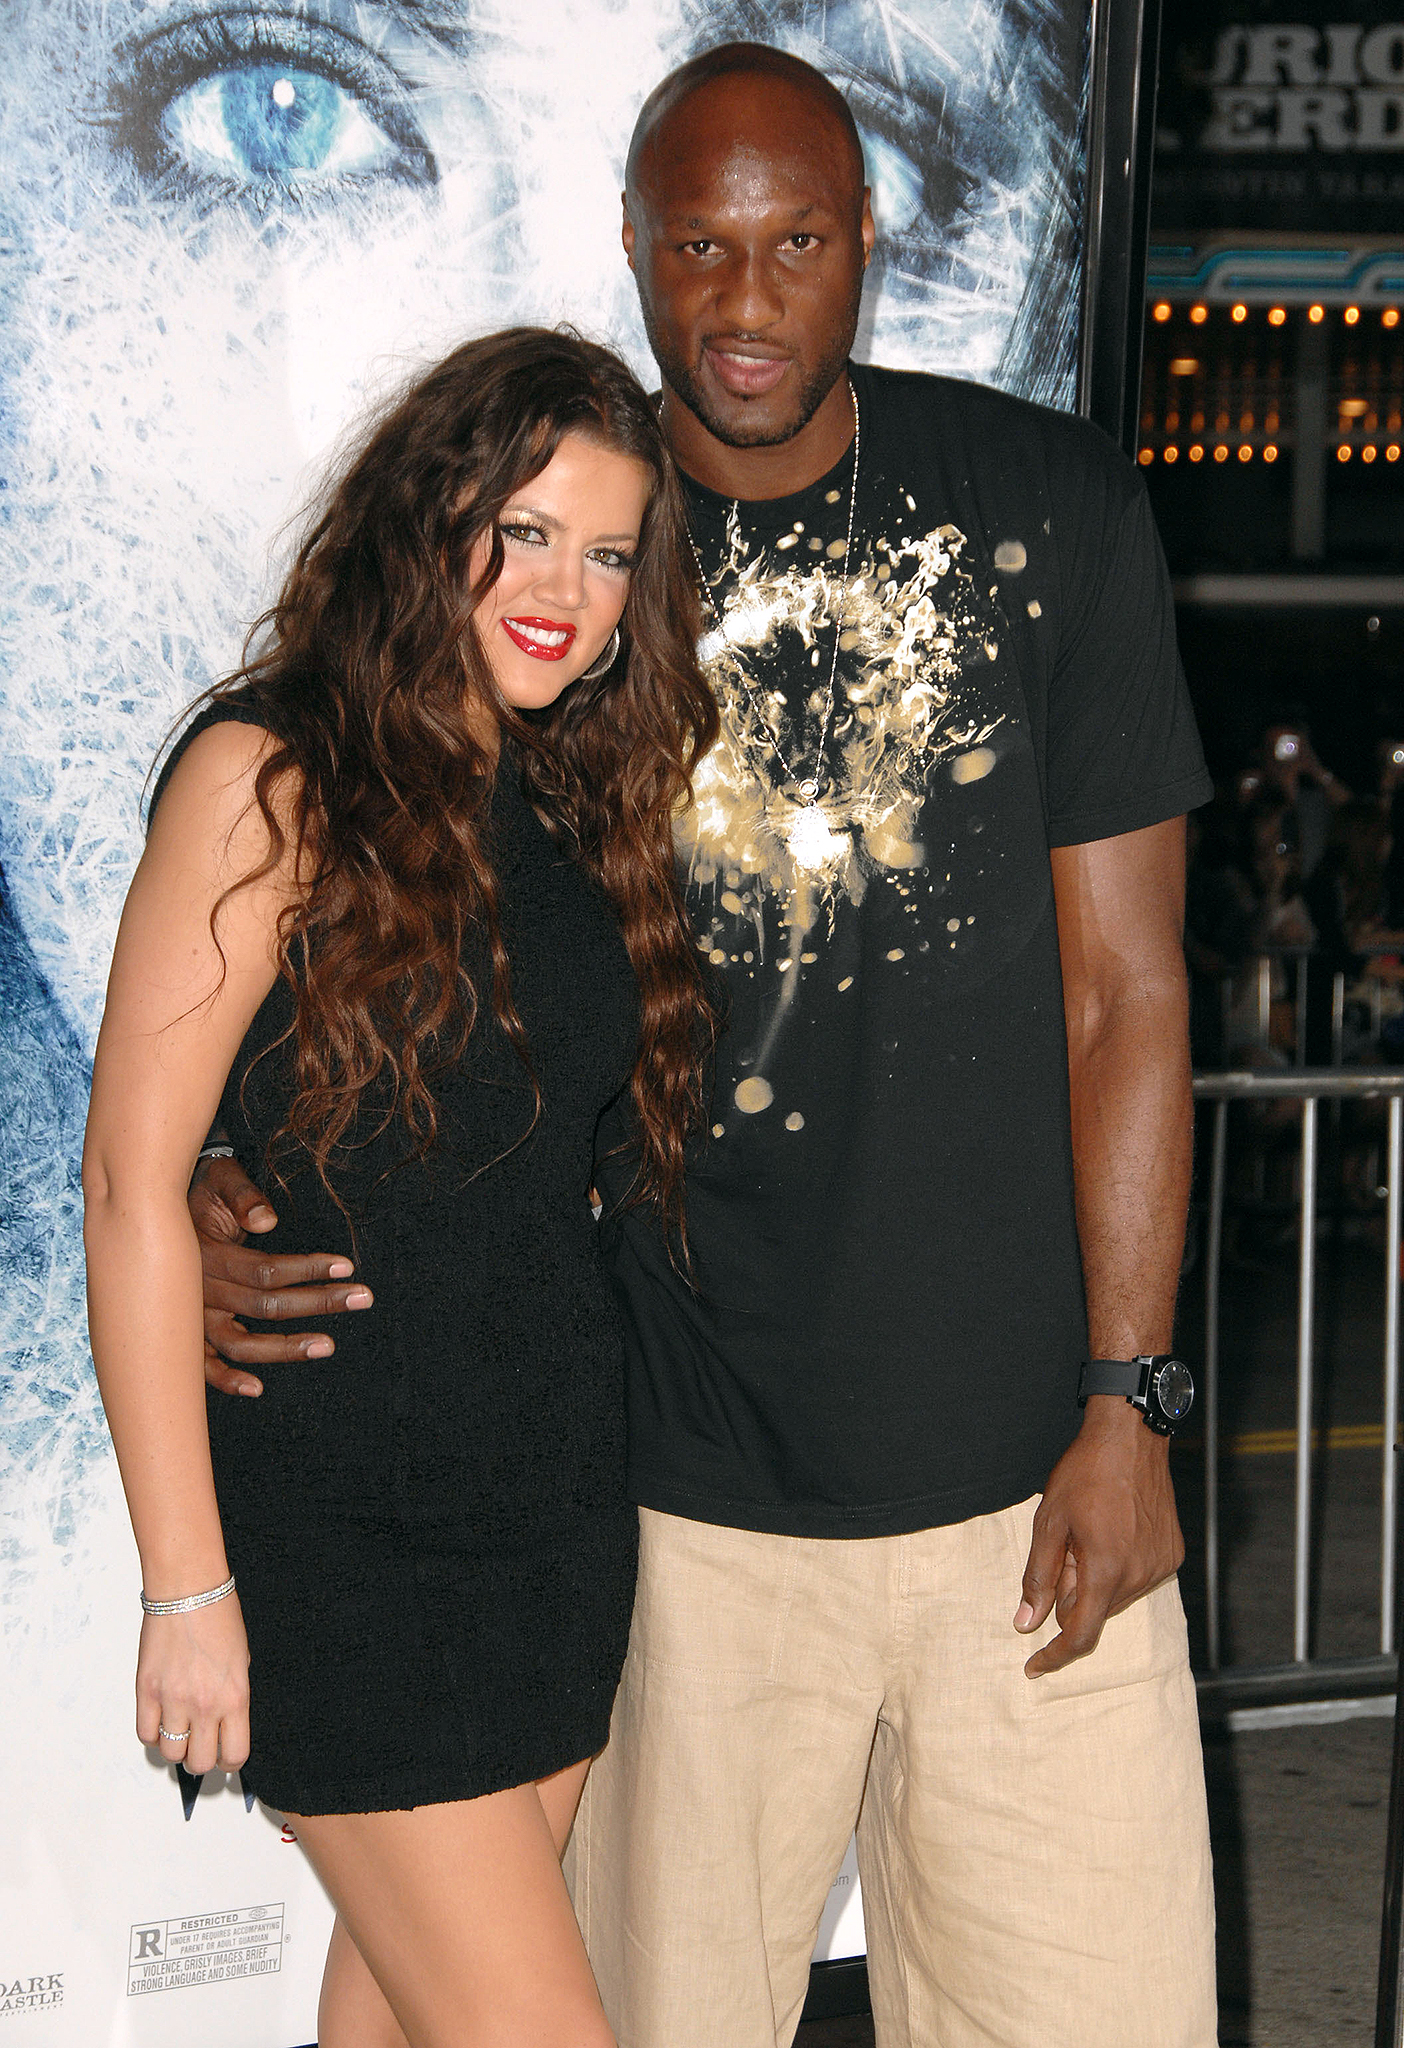 Khloé Kardashian and Lamar Odom in happier times. (WireImage)